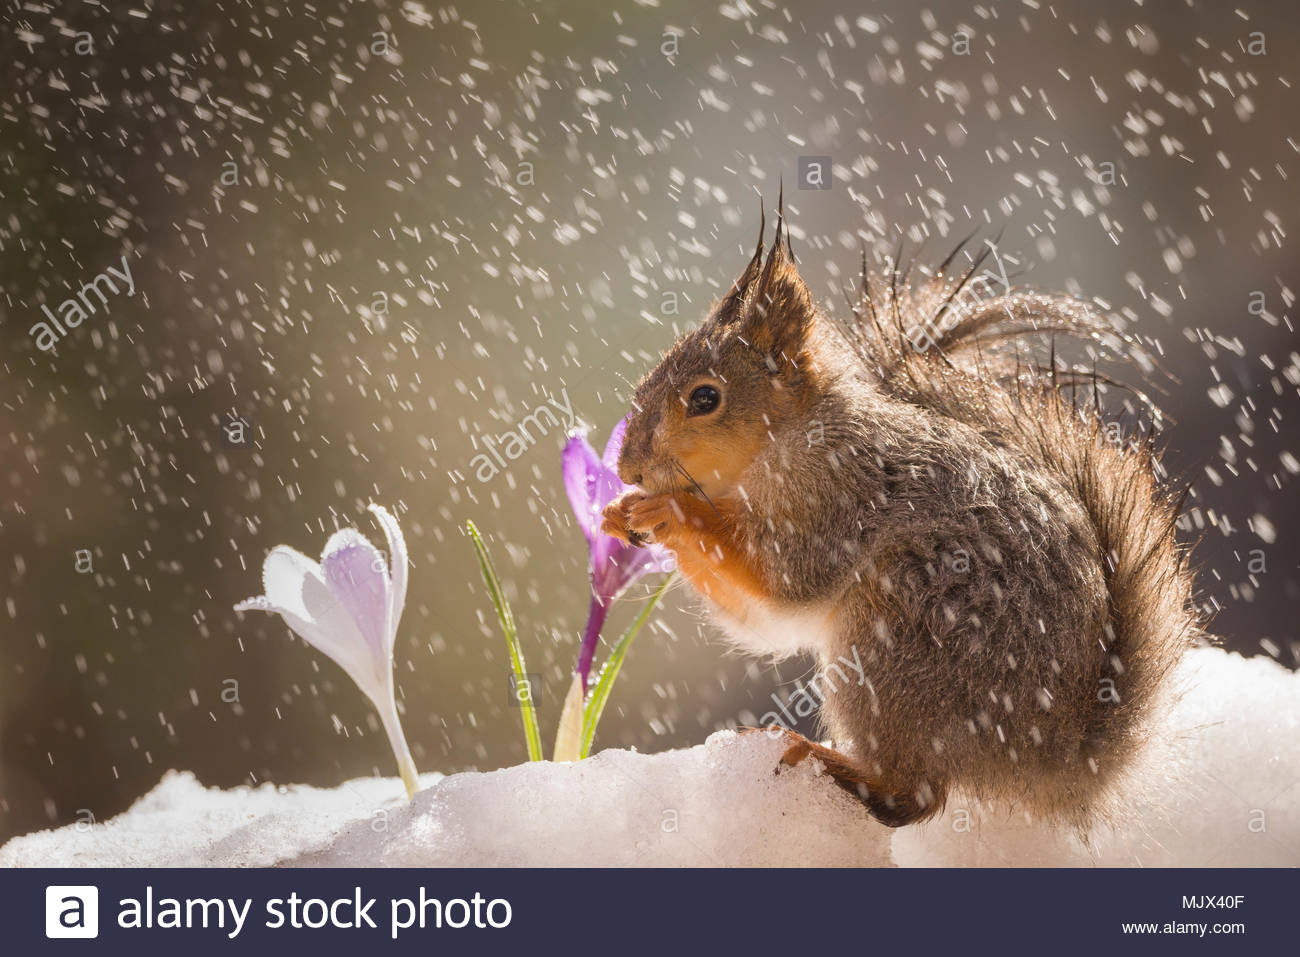 red squirrel on the snow with crocus in rain - Stock Image